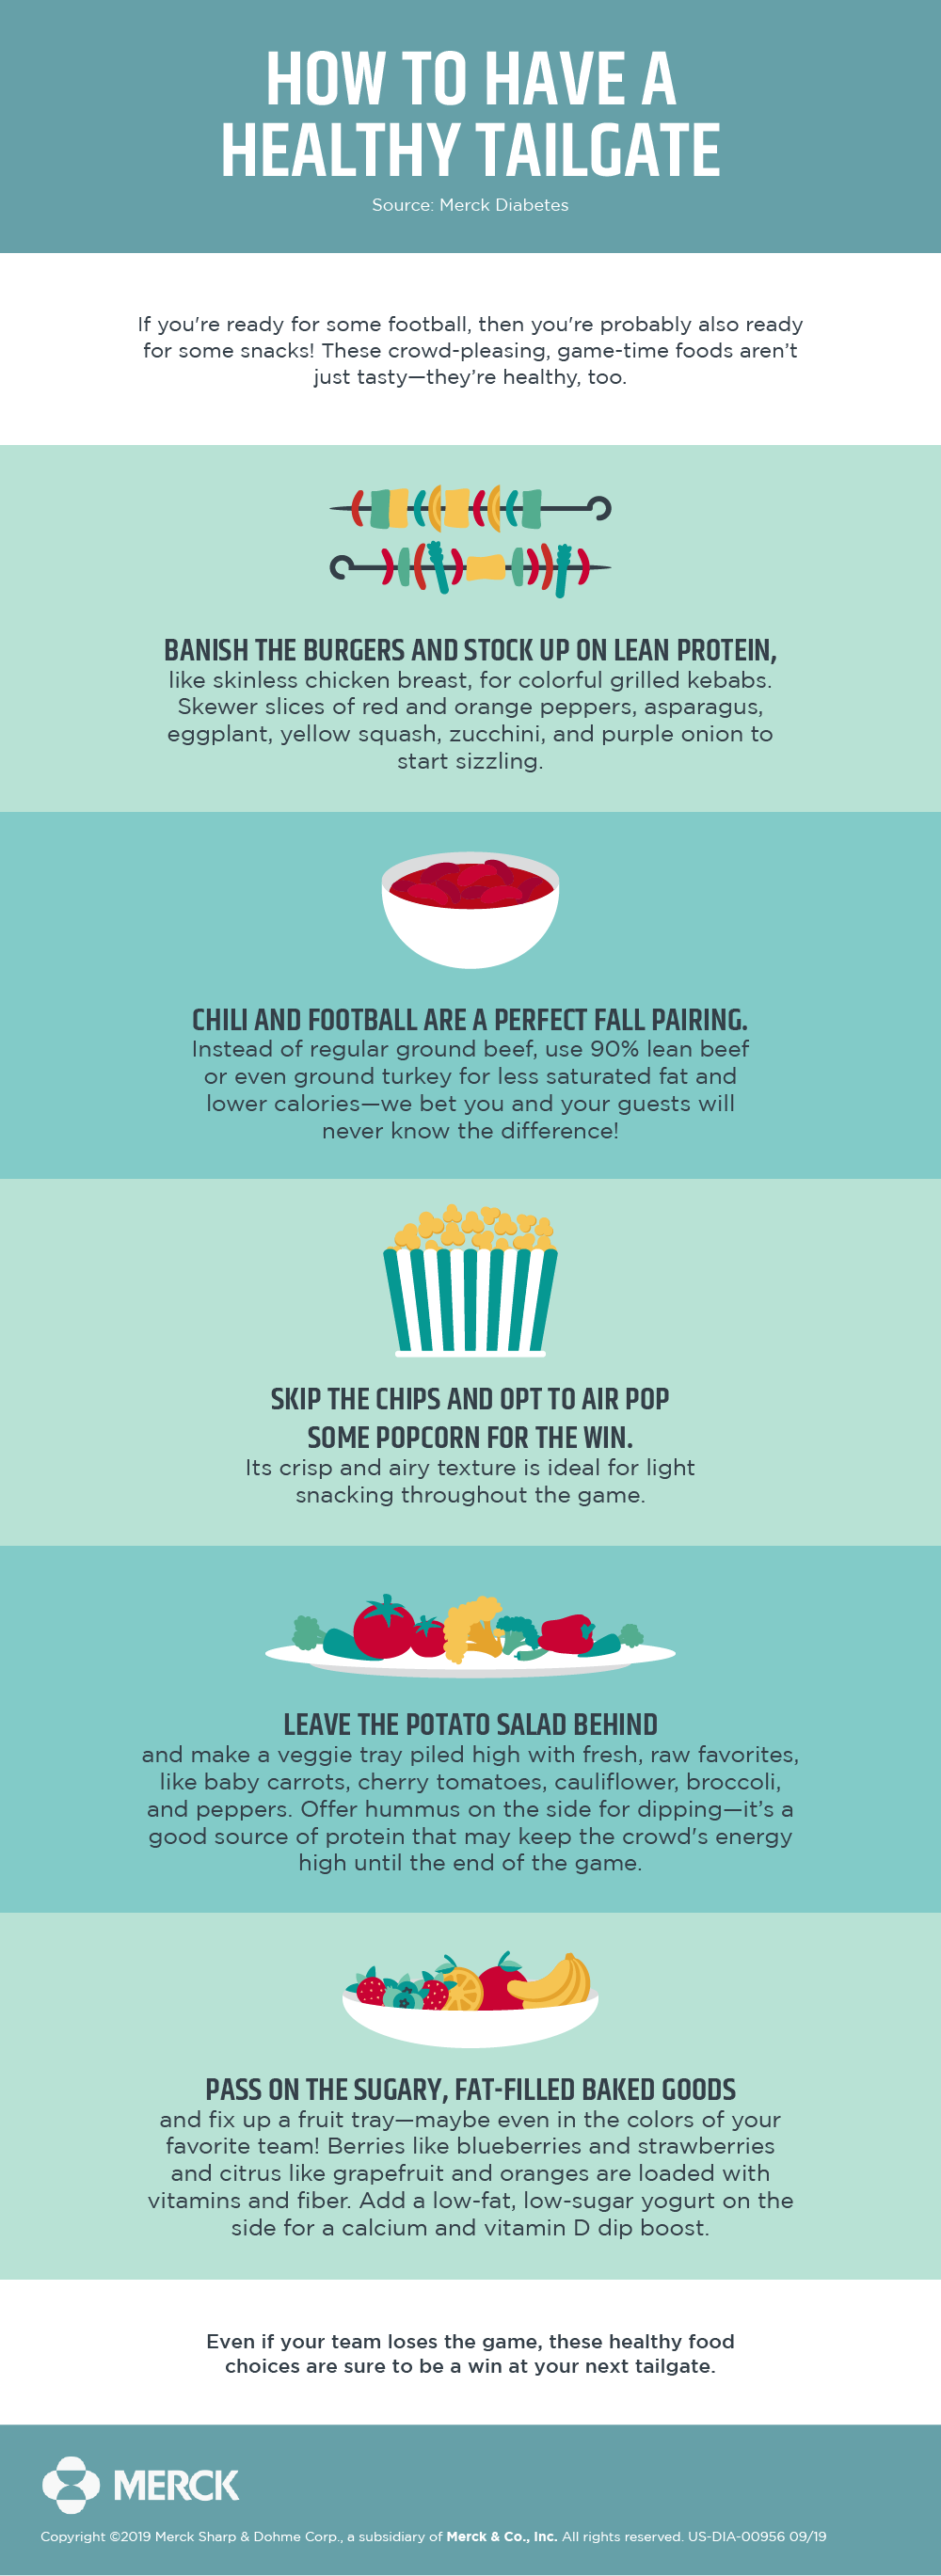 Merck Diabetes How 2 Have A Healthy Tailgate_v3-01.png